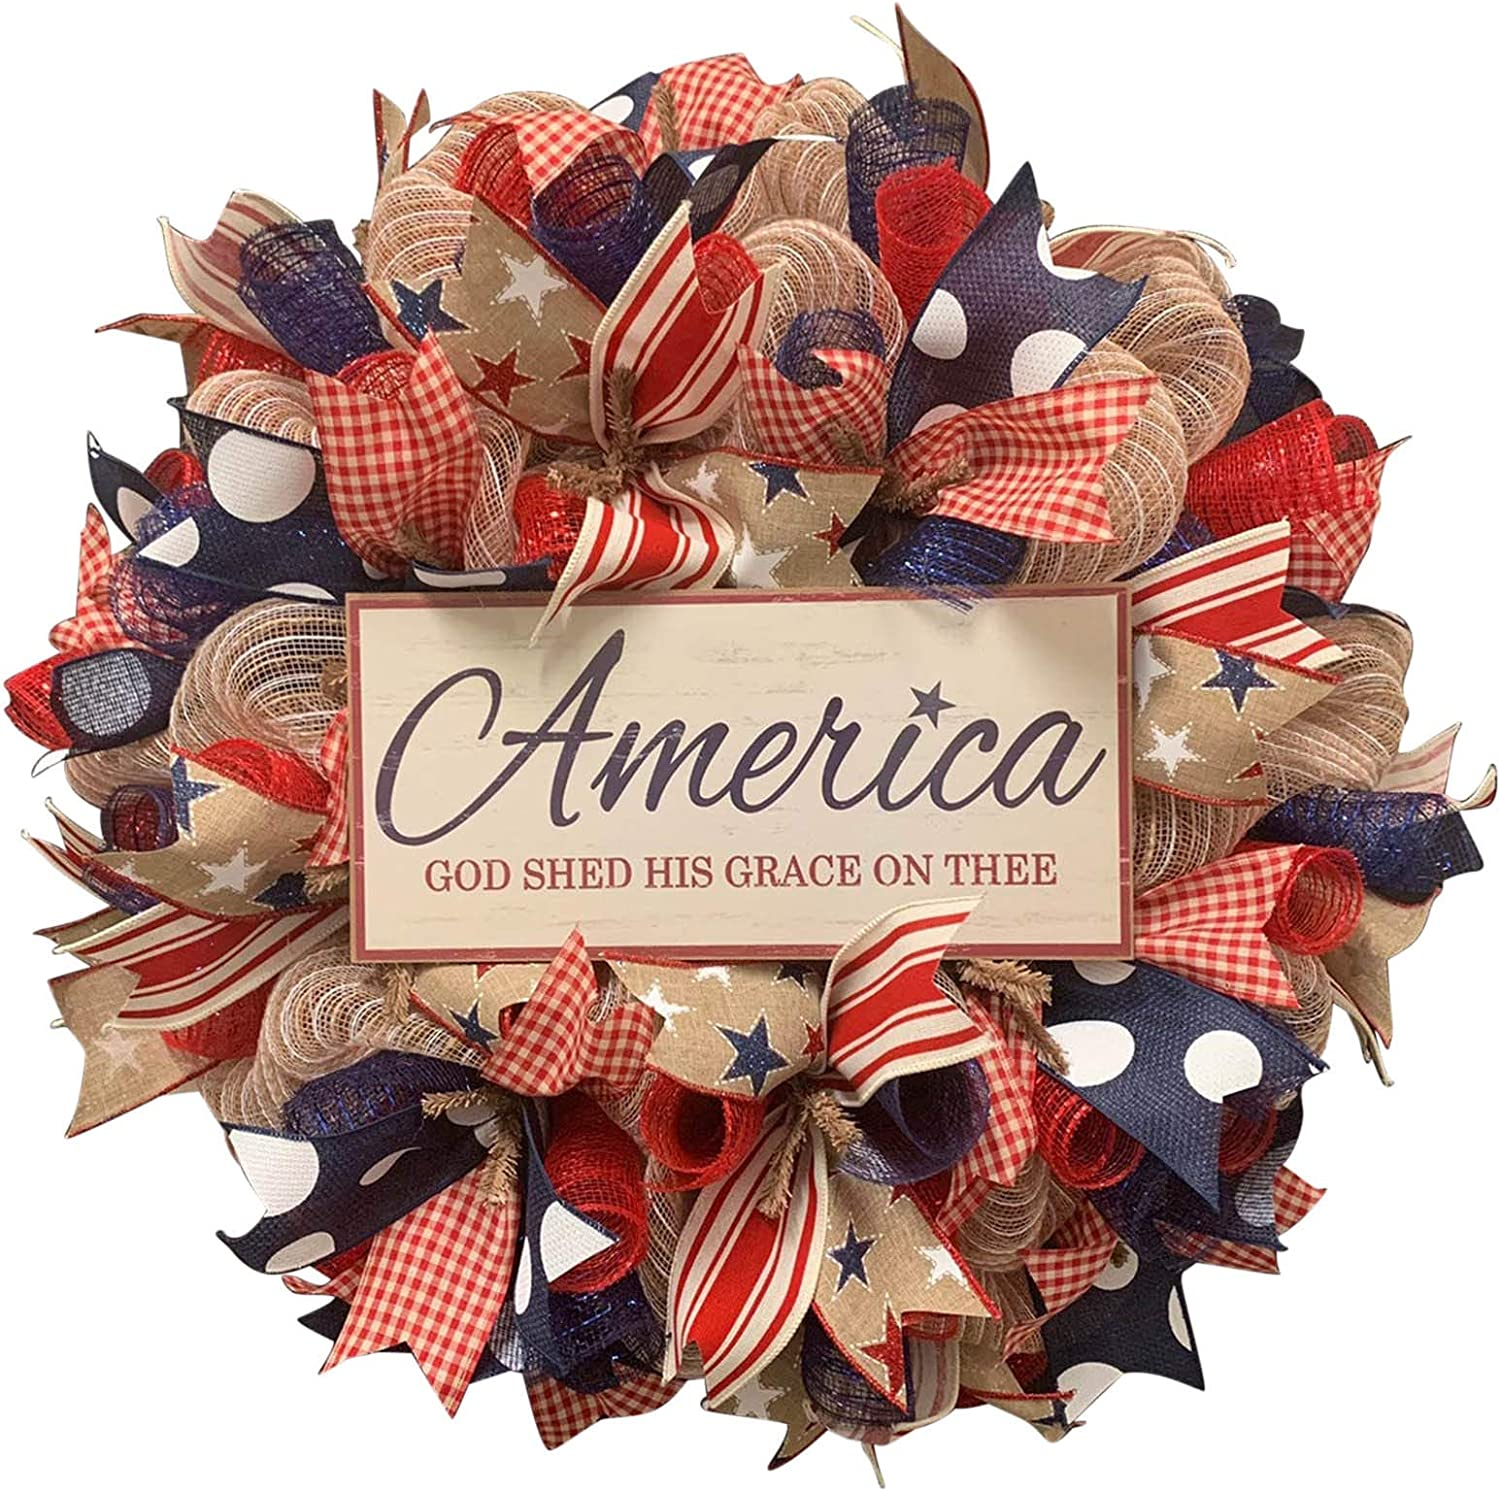 Independence Day Wreaths for Front Door July 4th Independence Day Wreath Decor Handcrafted Hanging Wreaths for Home Wall Decor Front Door Decorations Outside (B)